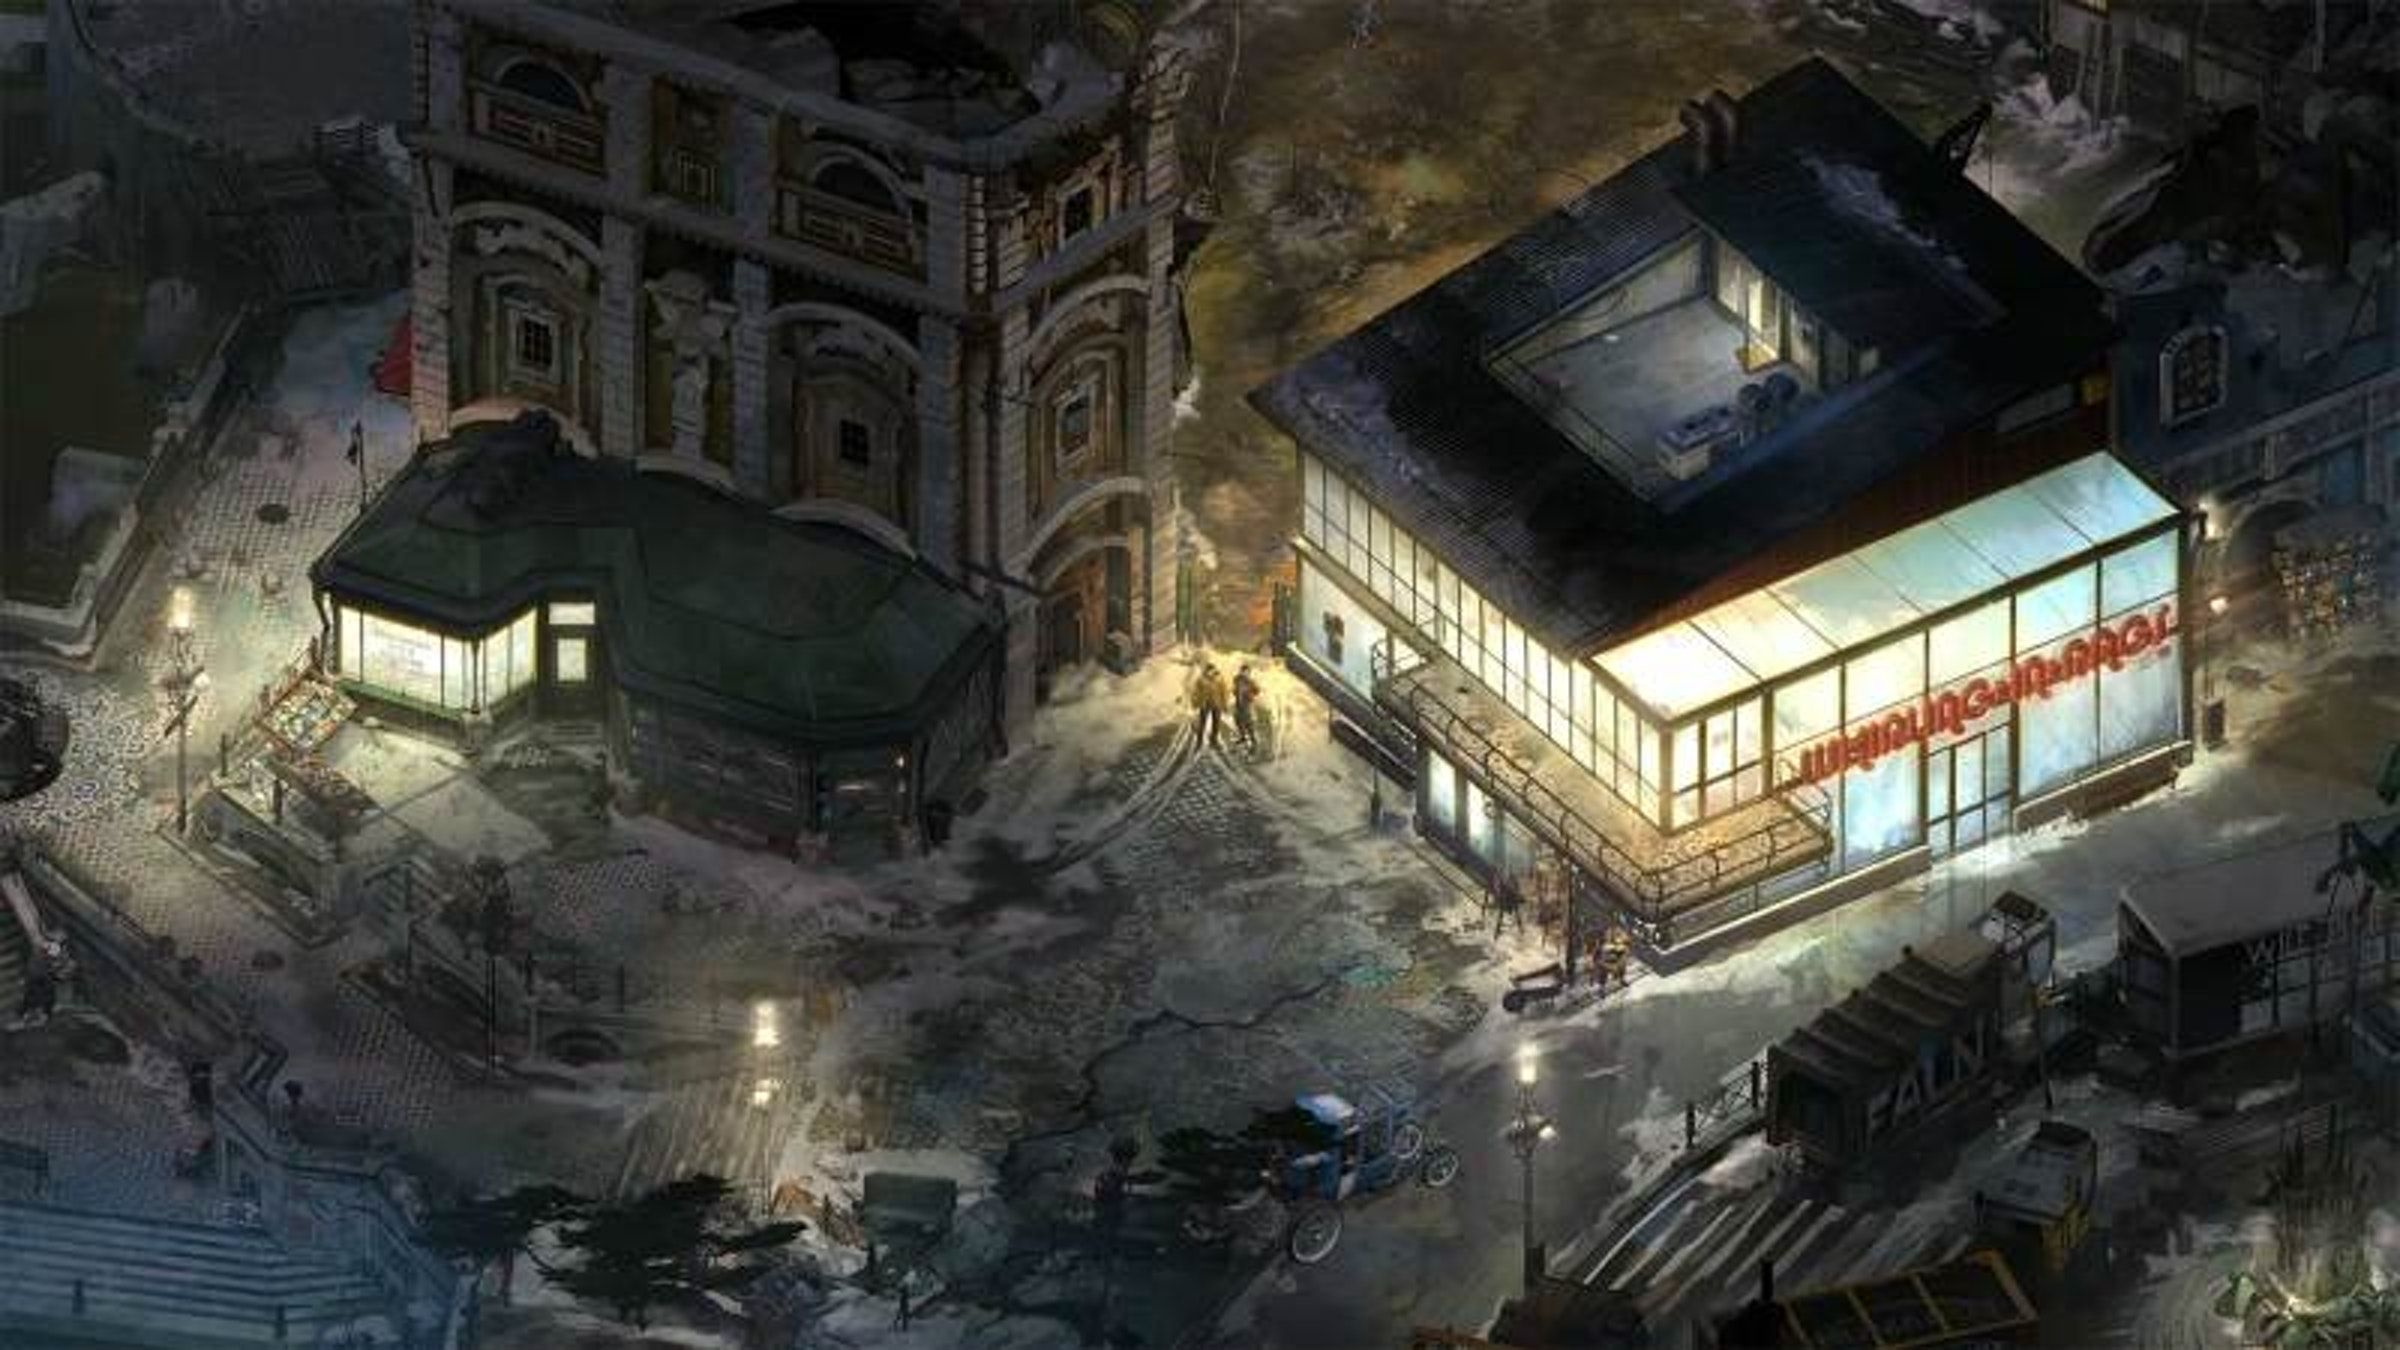 Swallowed By Disco Elysium Www Splicetoday Com In 2020 Elysium Disco Games To Buy